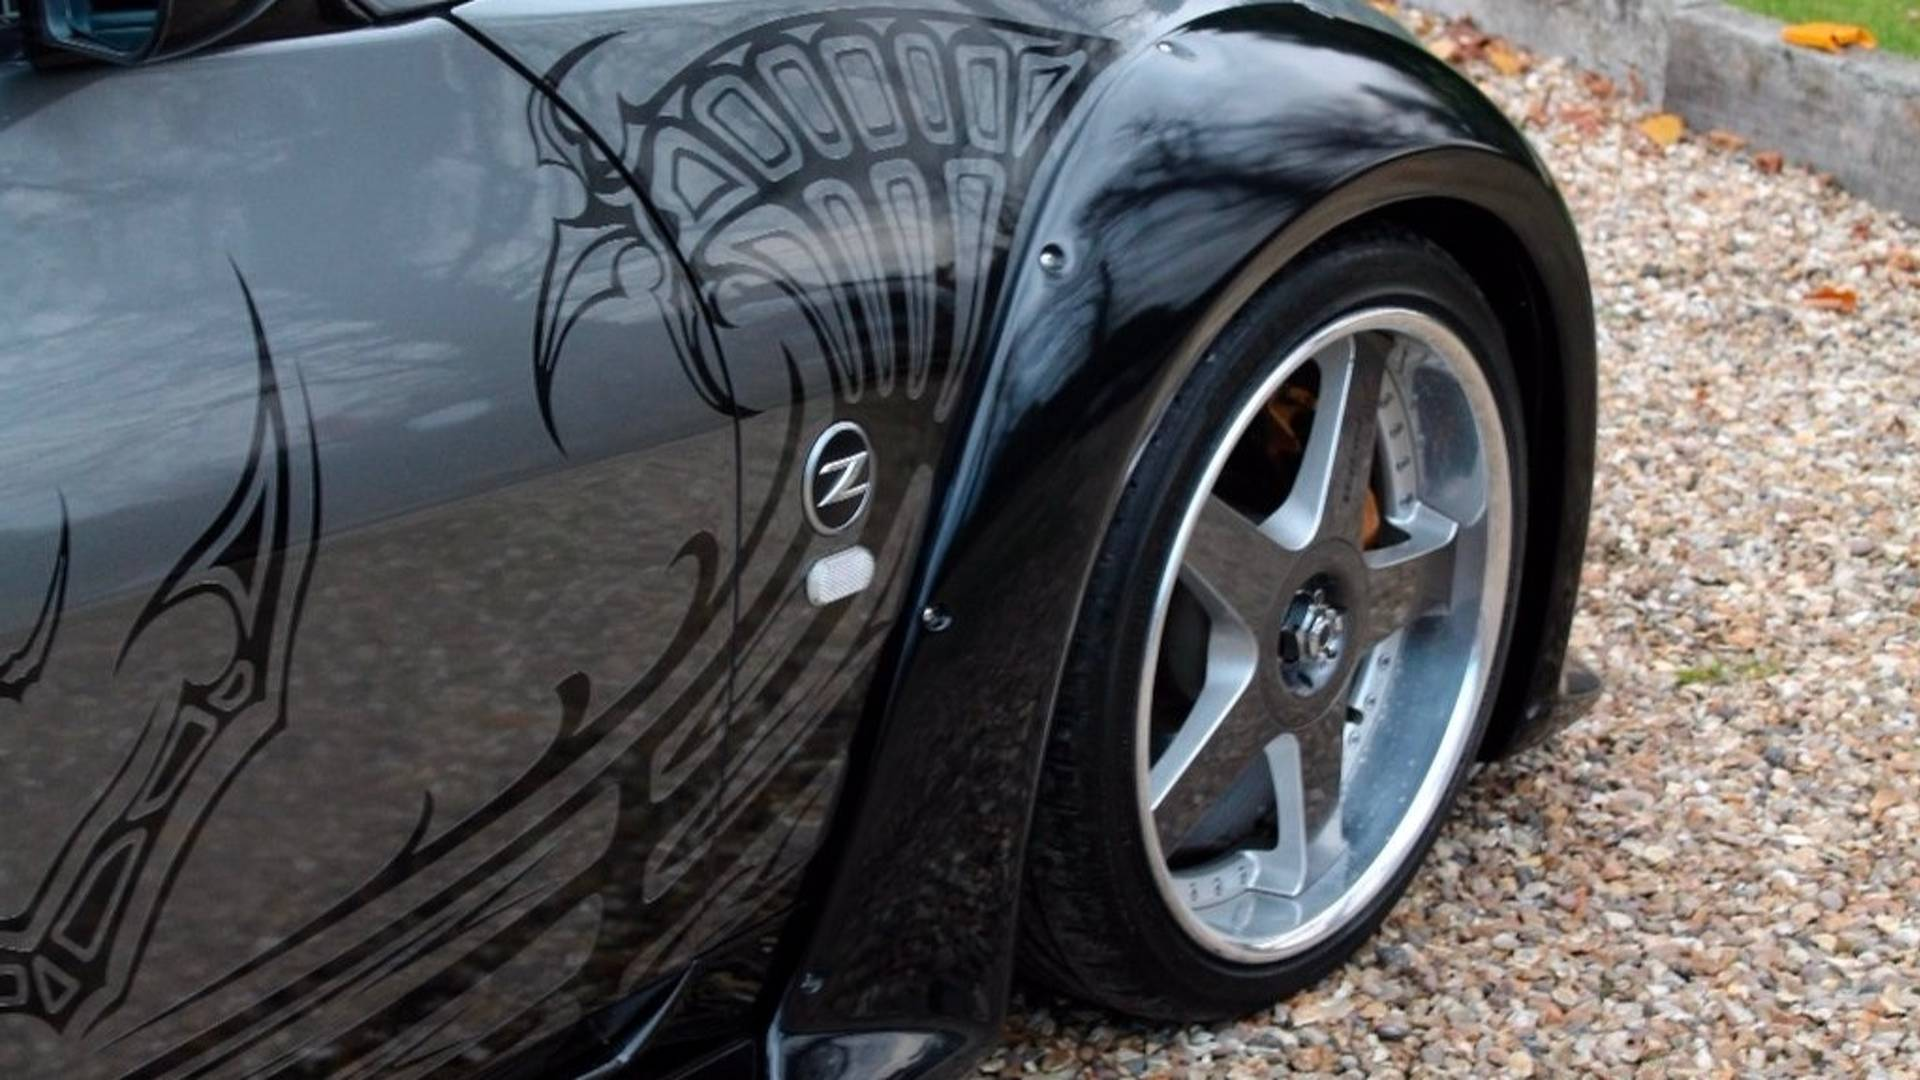 nissan 350z from tokyo drift is for sale in uk for $133k